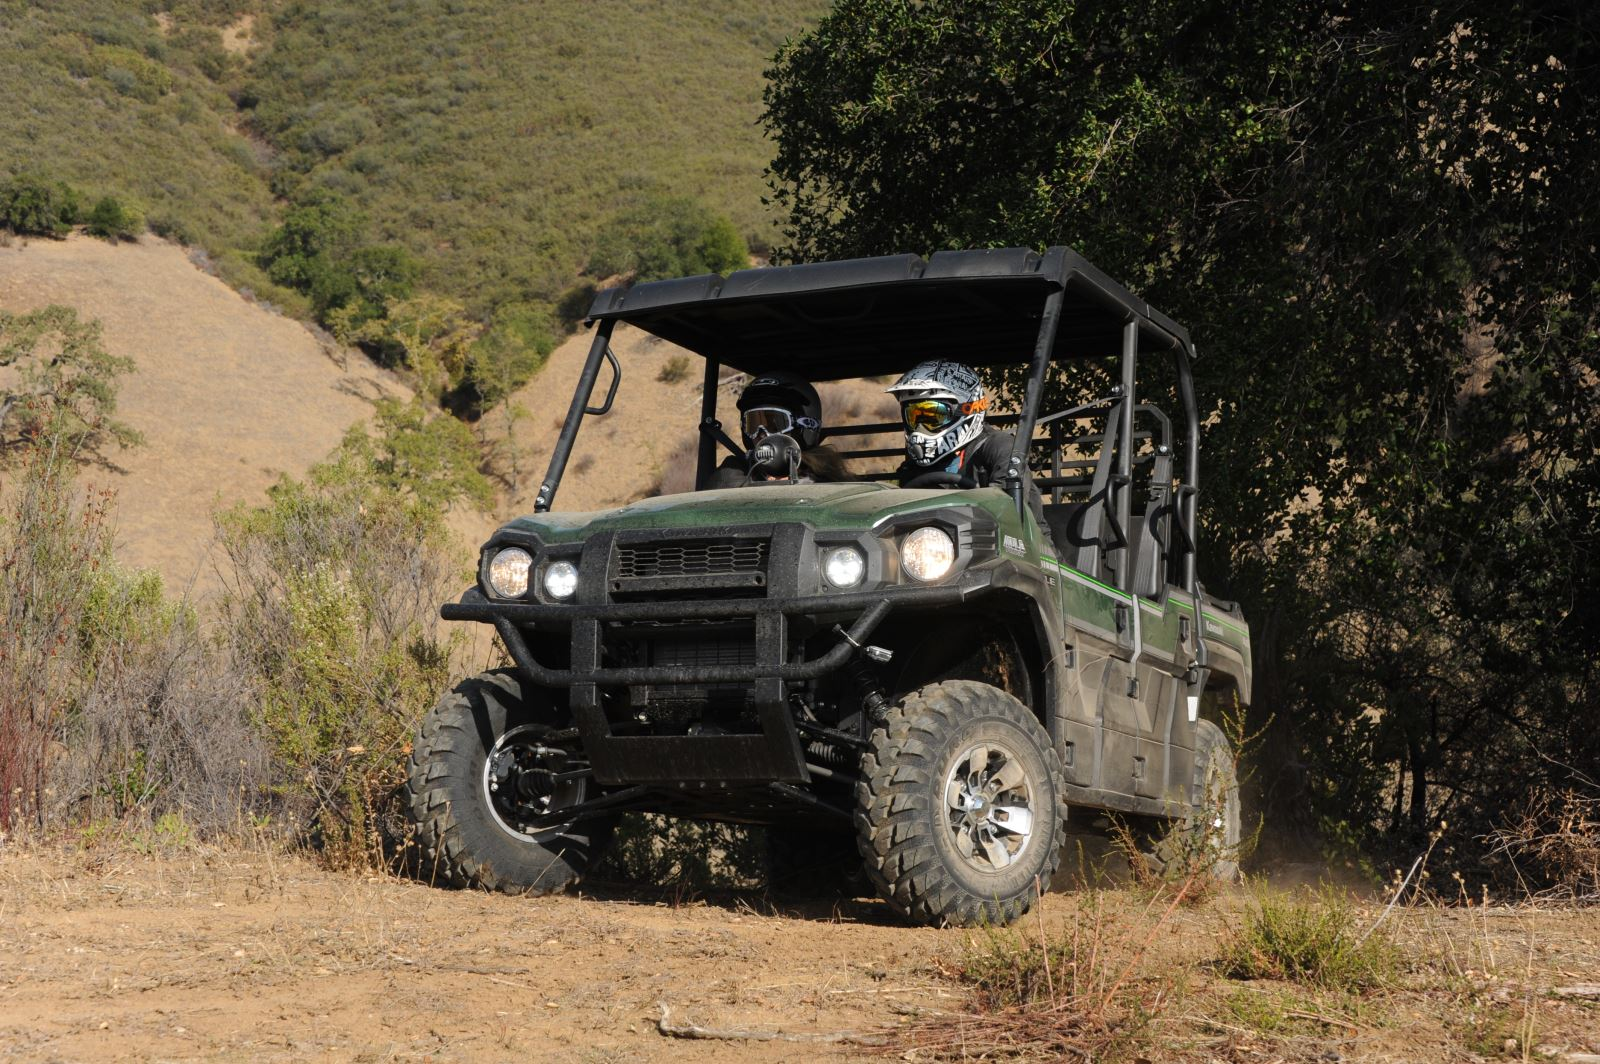 Kawasaki Mule Pro-FXT: Mixing Play With Work | Dirt Toys Magazine